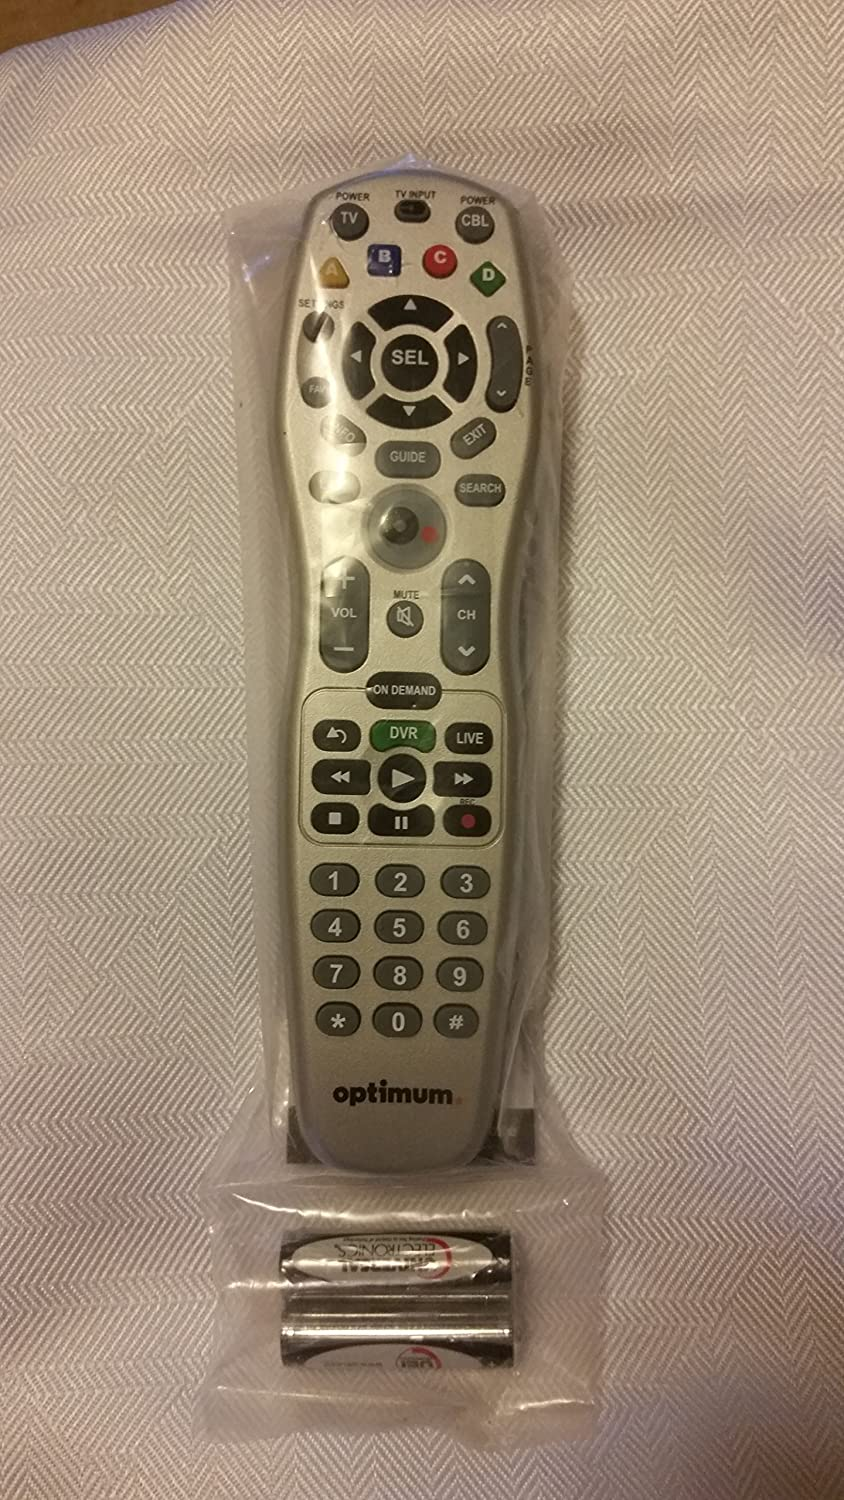 Amazon cablevision optimum model ucr2464 b00 universal remote amazon cablevision optimum model ucr2464 b00 universal remote control home audio theater sciox Choice Image